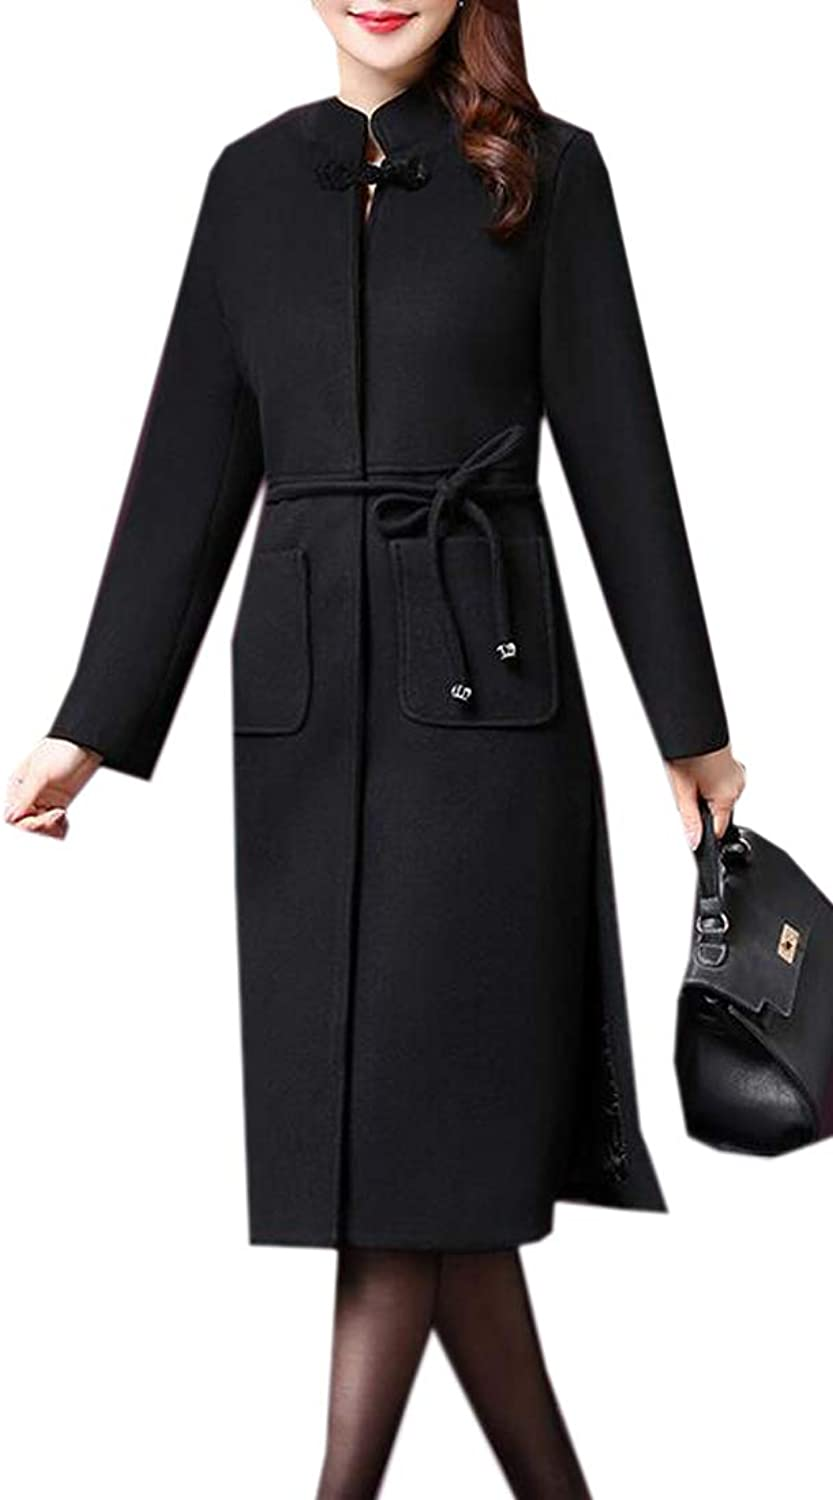 Suncolor8 Women Warm Stand Collar Slim Fit Belted Long Wool Blended Trench Pea Coat Outwear